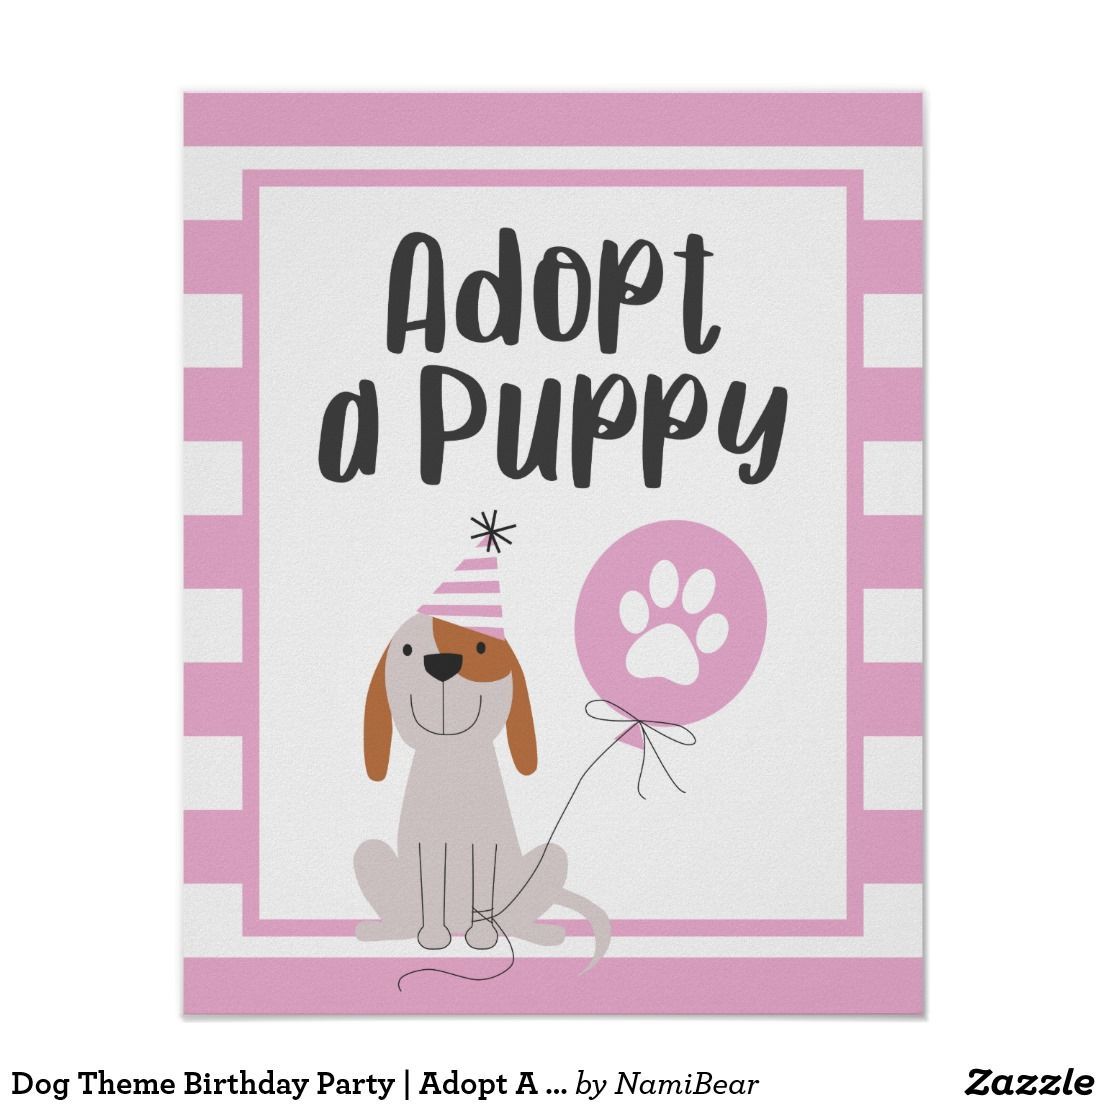 Dog Theme Birthday Party Adopt A Puppy Sign Pink This Poster Is For Your Child S Dog Theme Birthda Pet Adoption Party 2nd Birthday Boys Birthday Party Themes